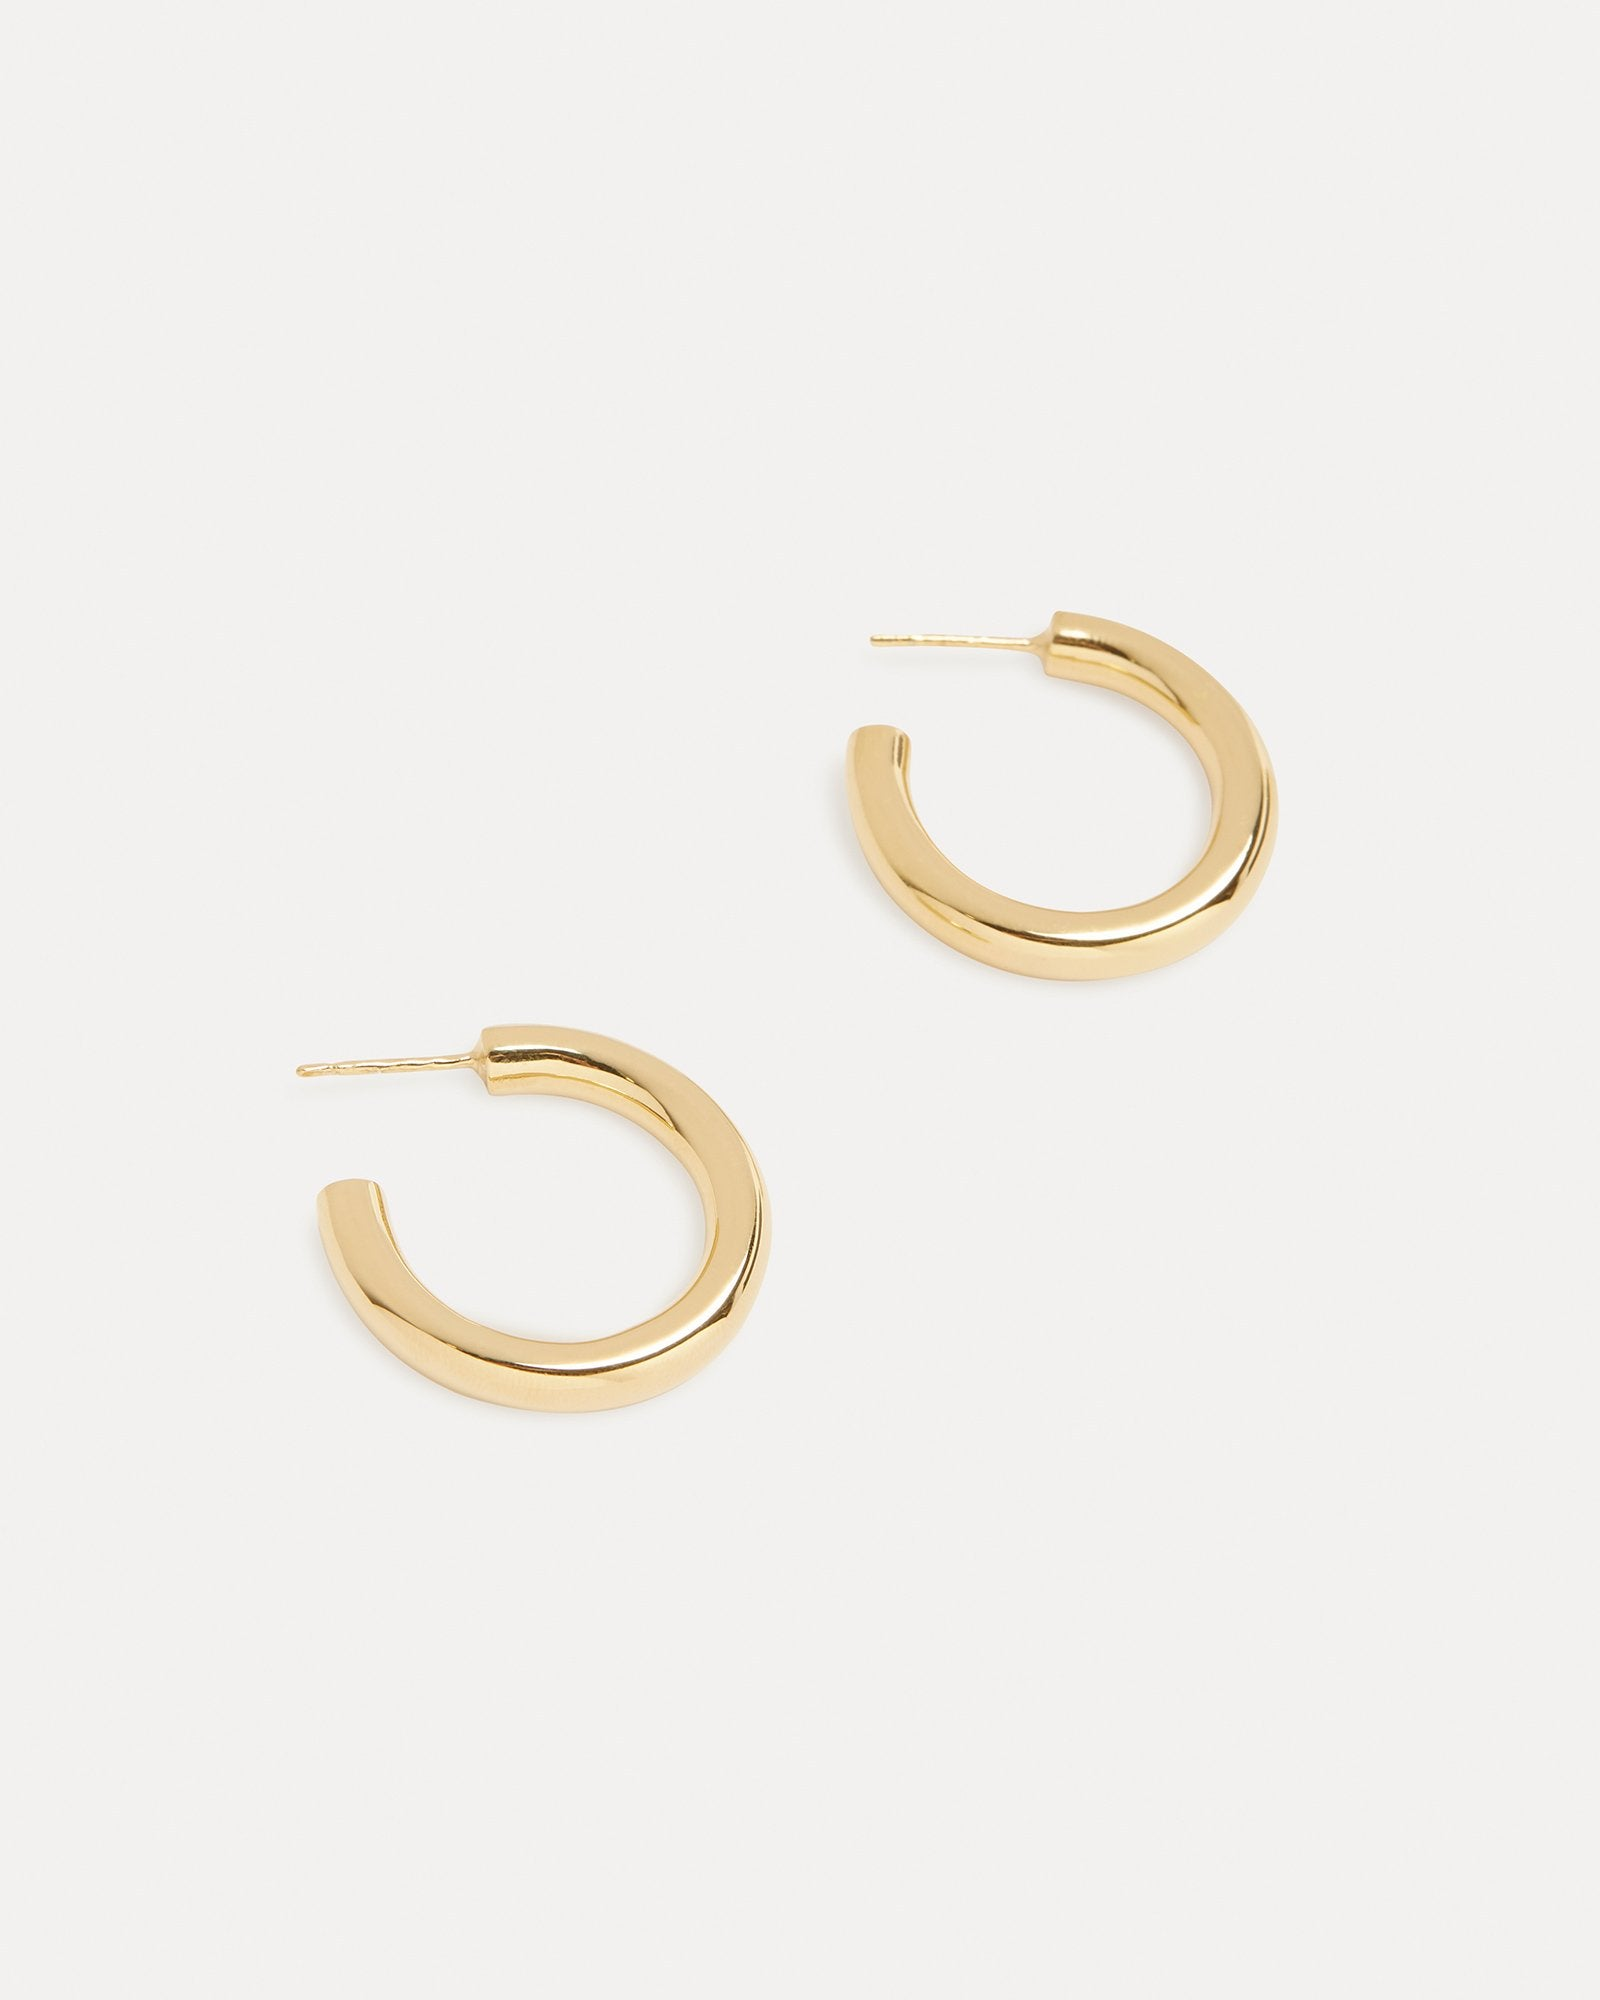 Holly Ryan Gold Mini Tube Hoop Earrings